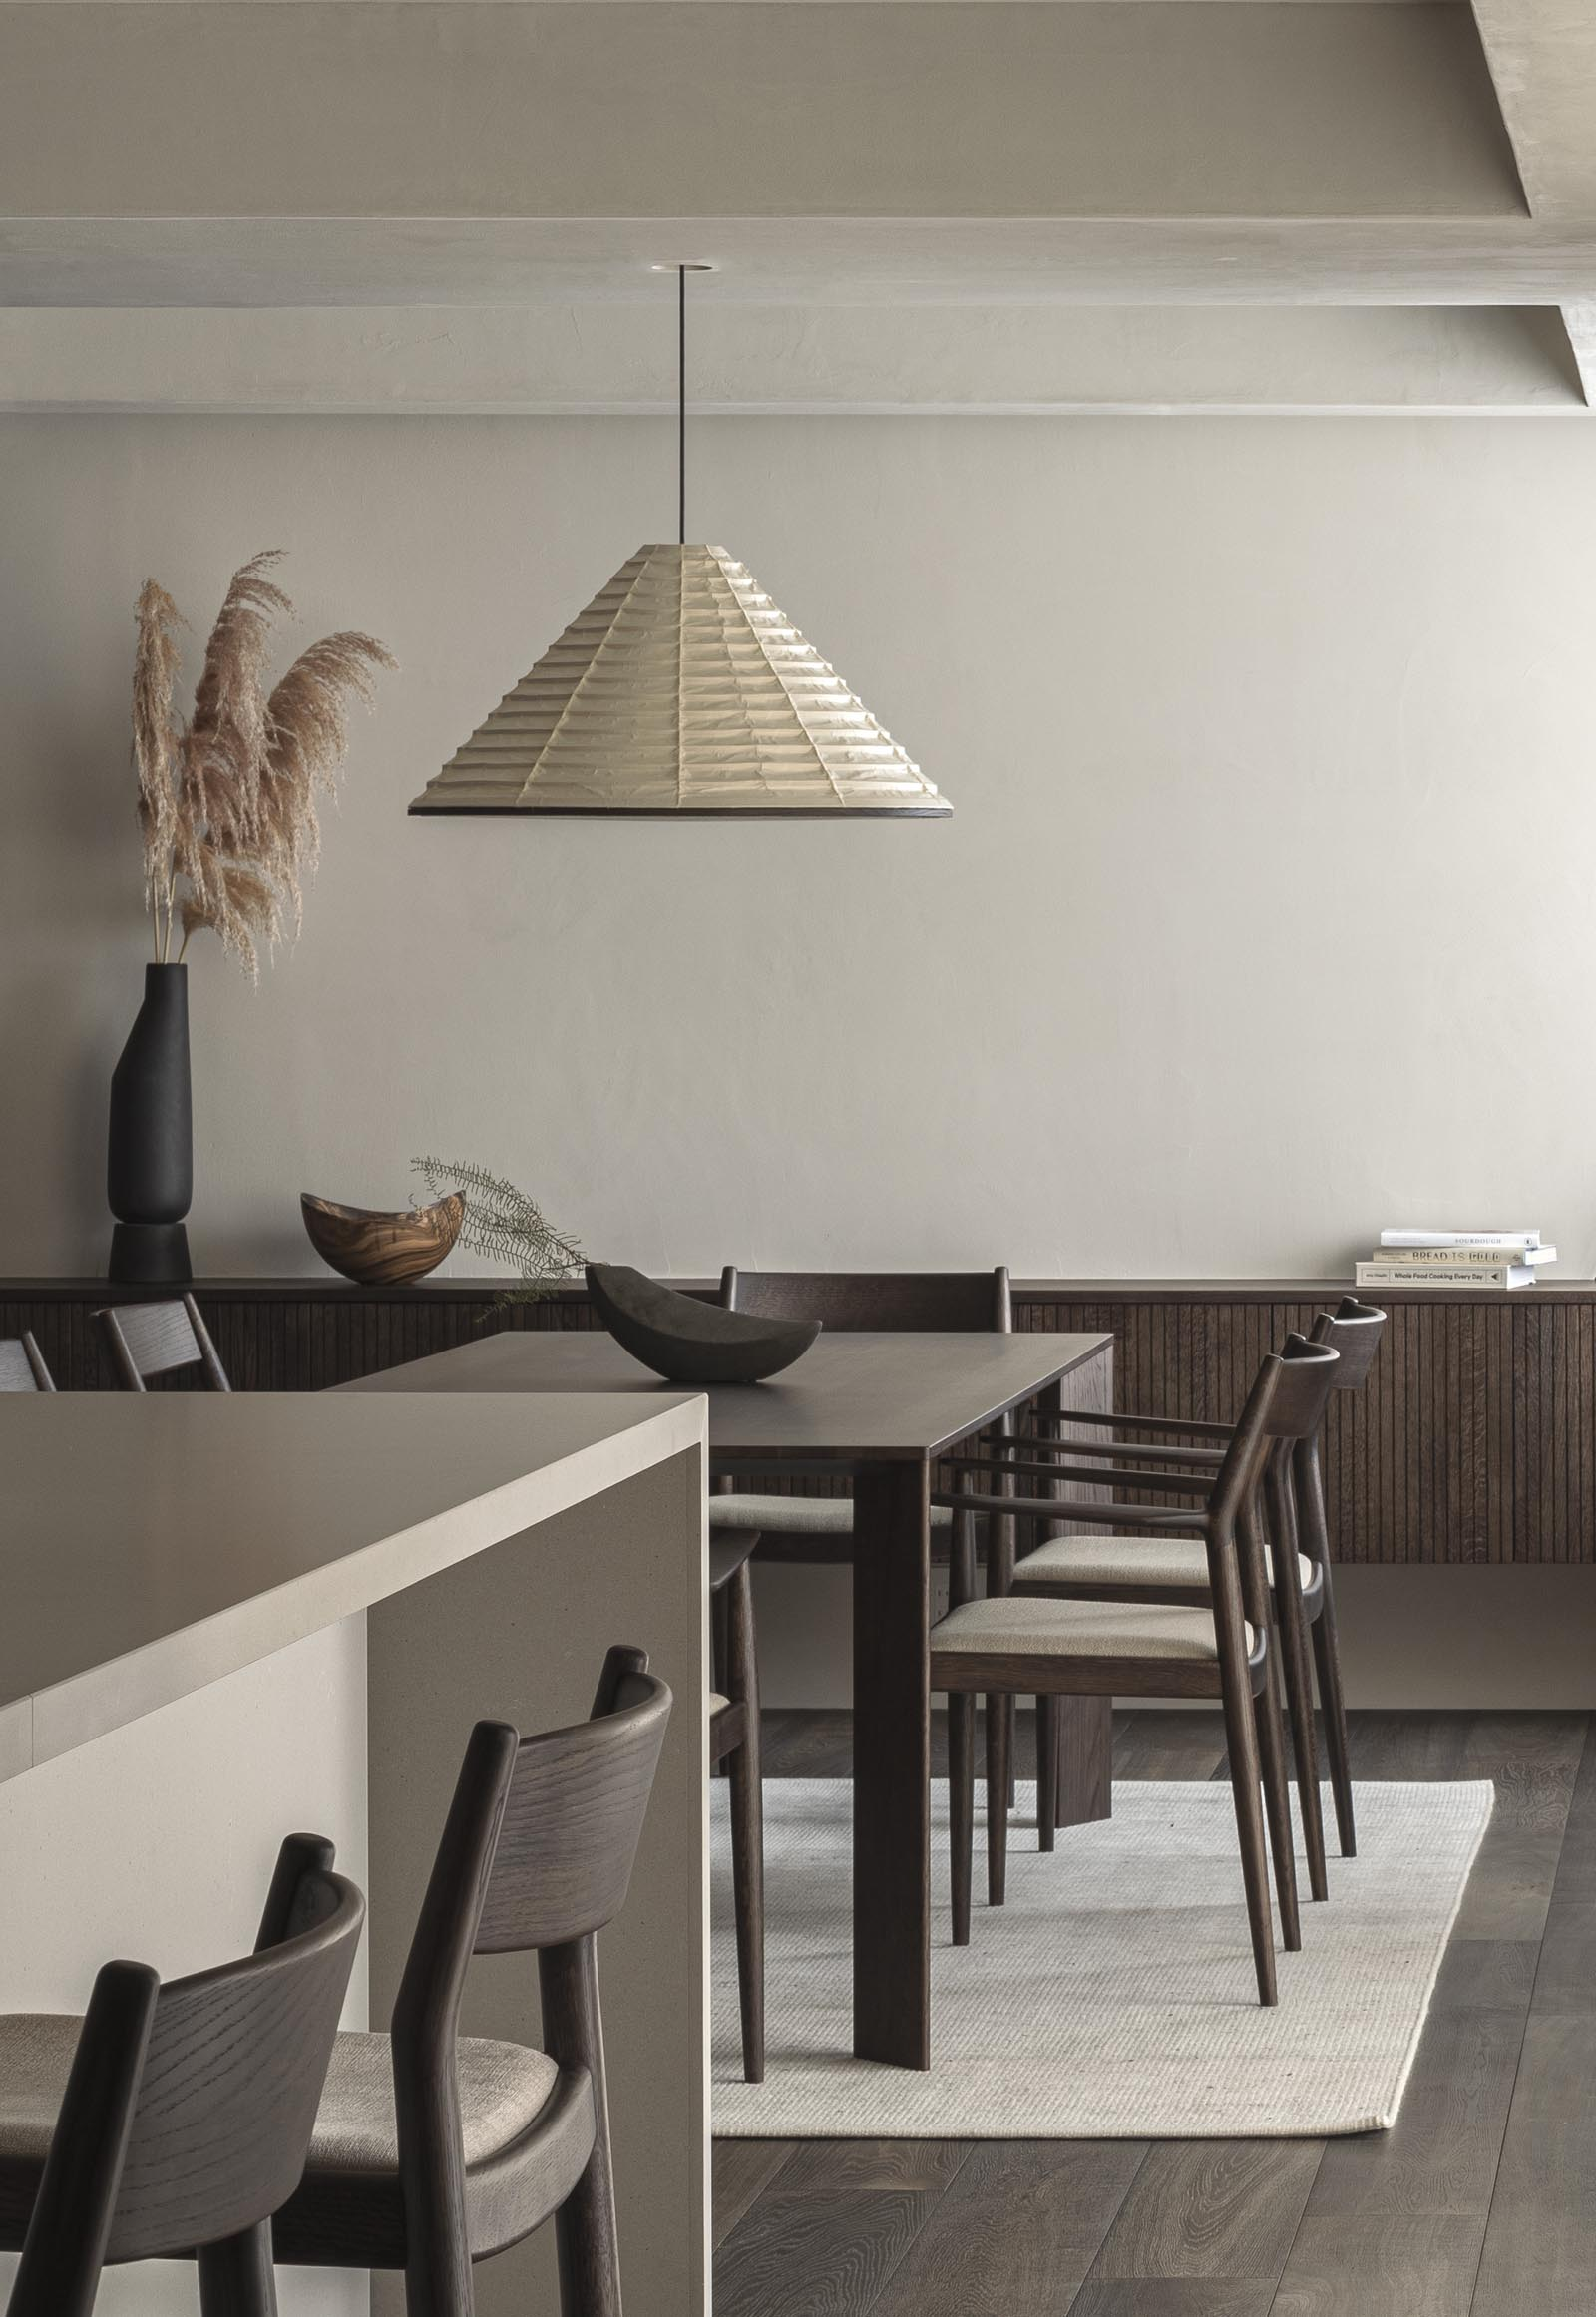 Minimalist dining room in dark, earthy tones from Japandi design collaboration Karimoku Case Study | These Four Walls blog